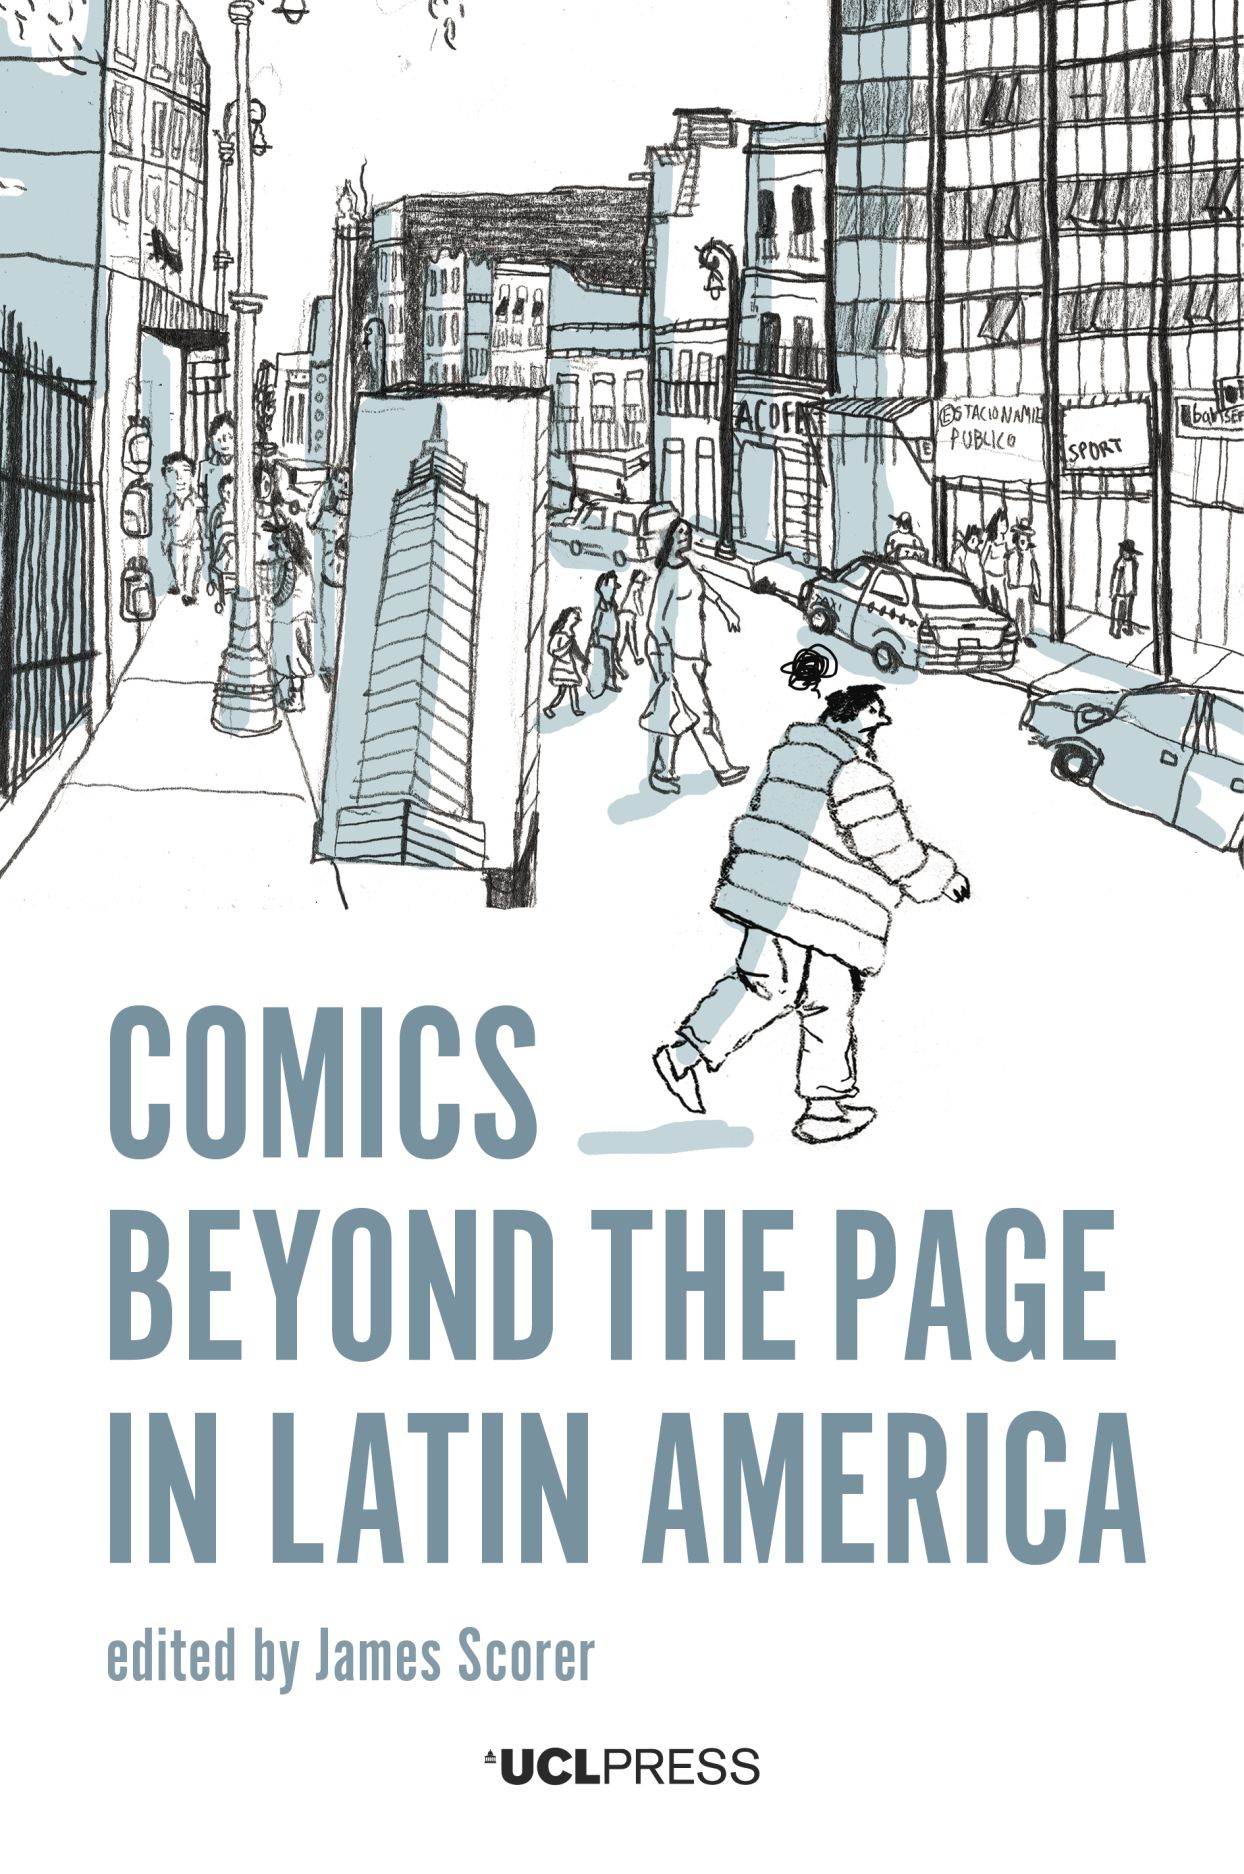 Comics Beyond the Page in Latin America